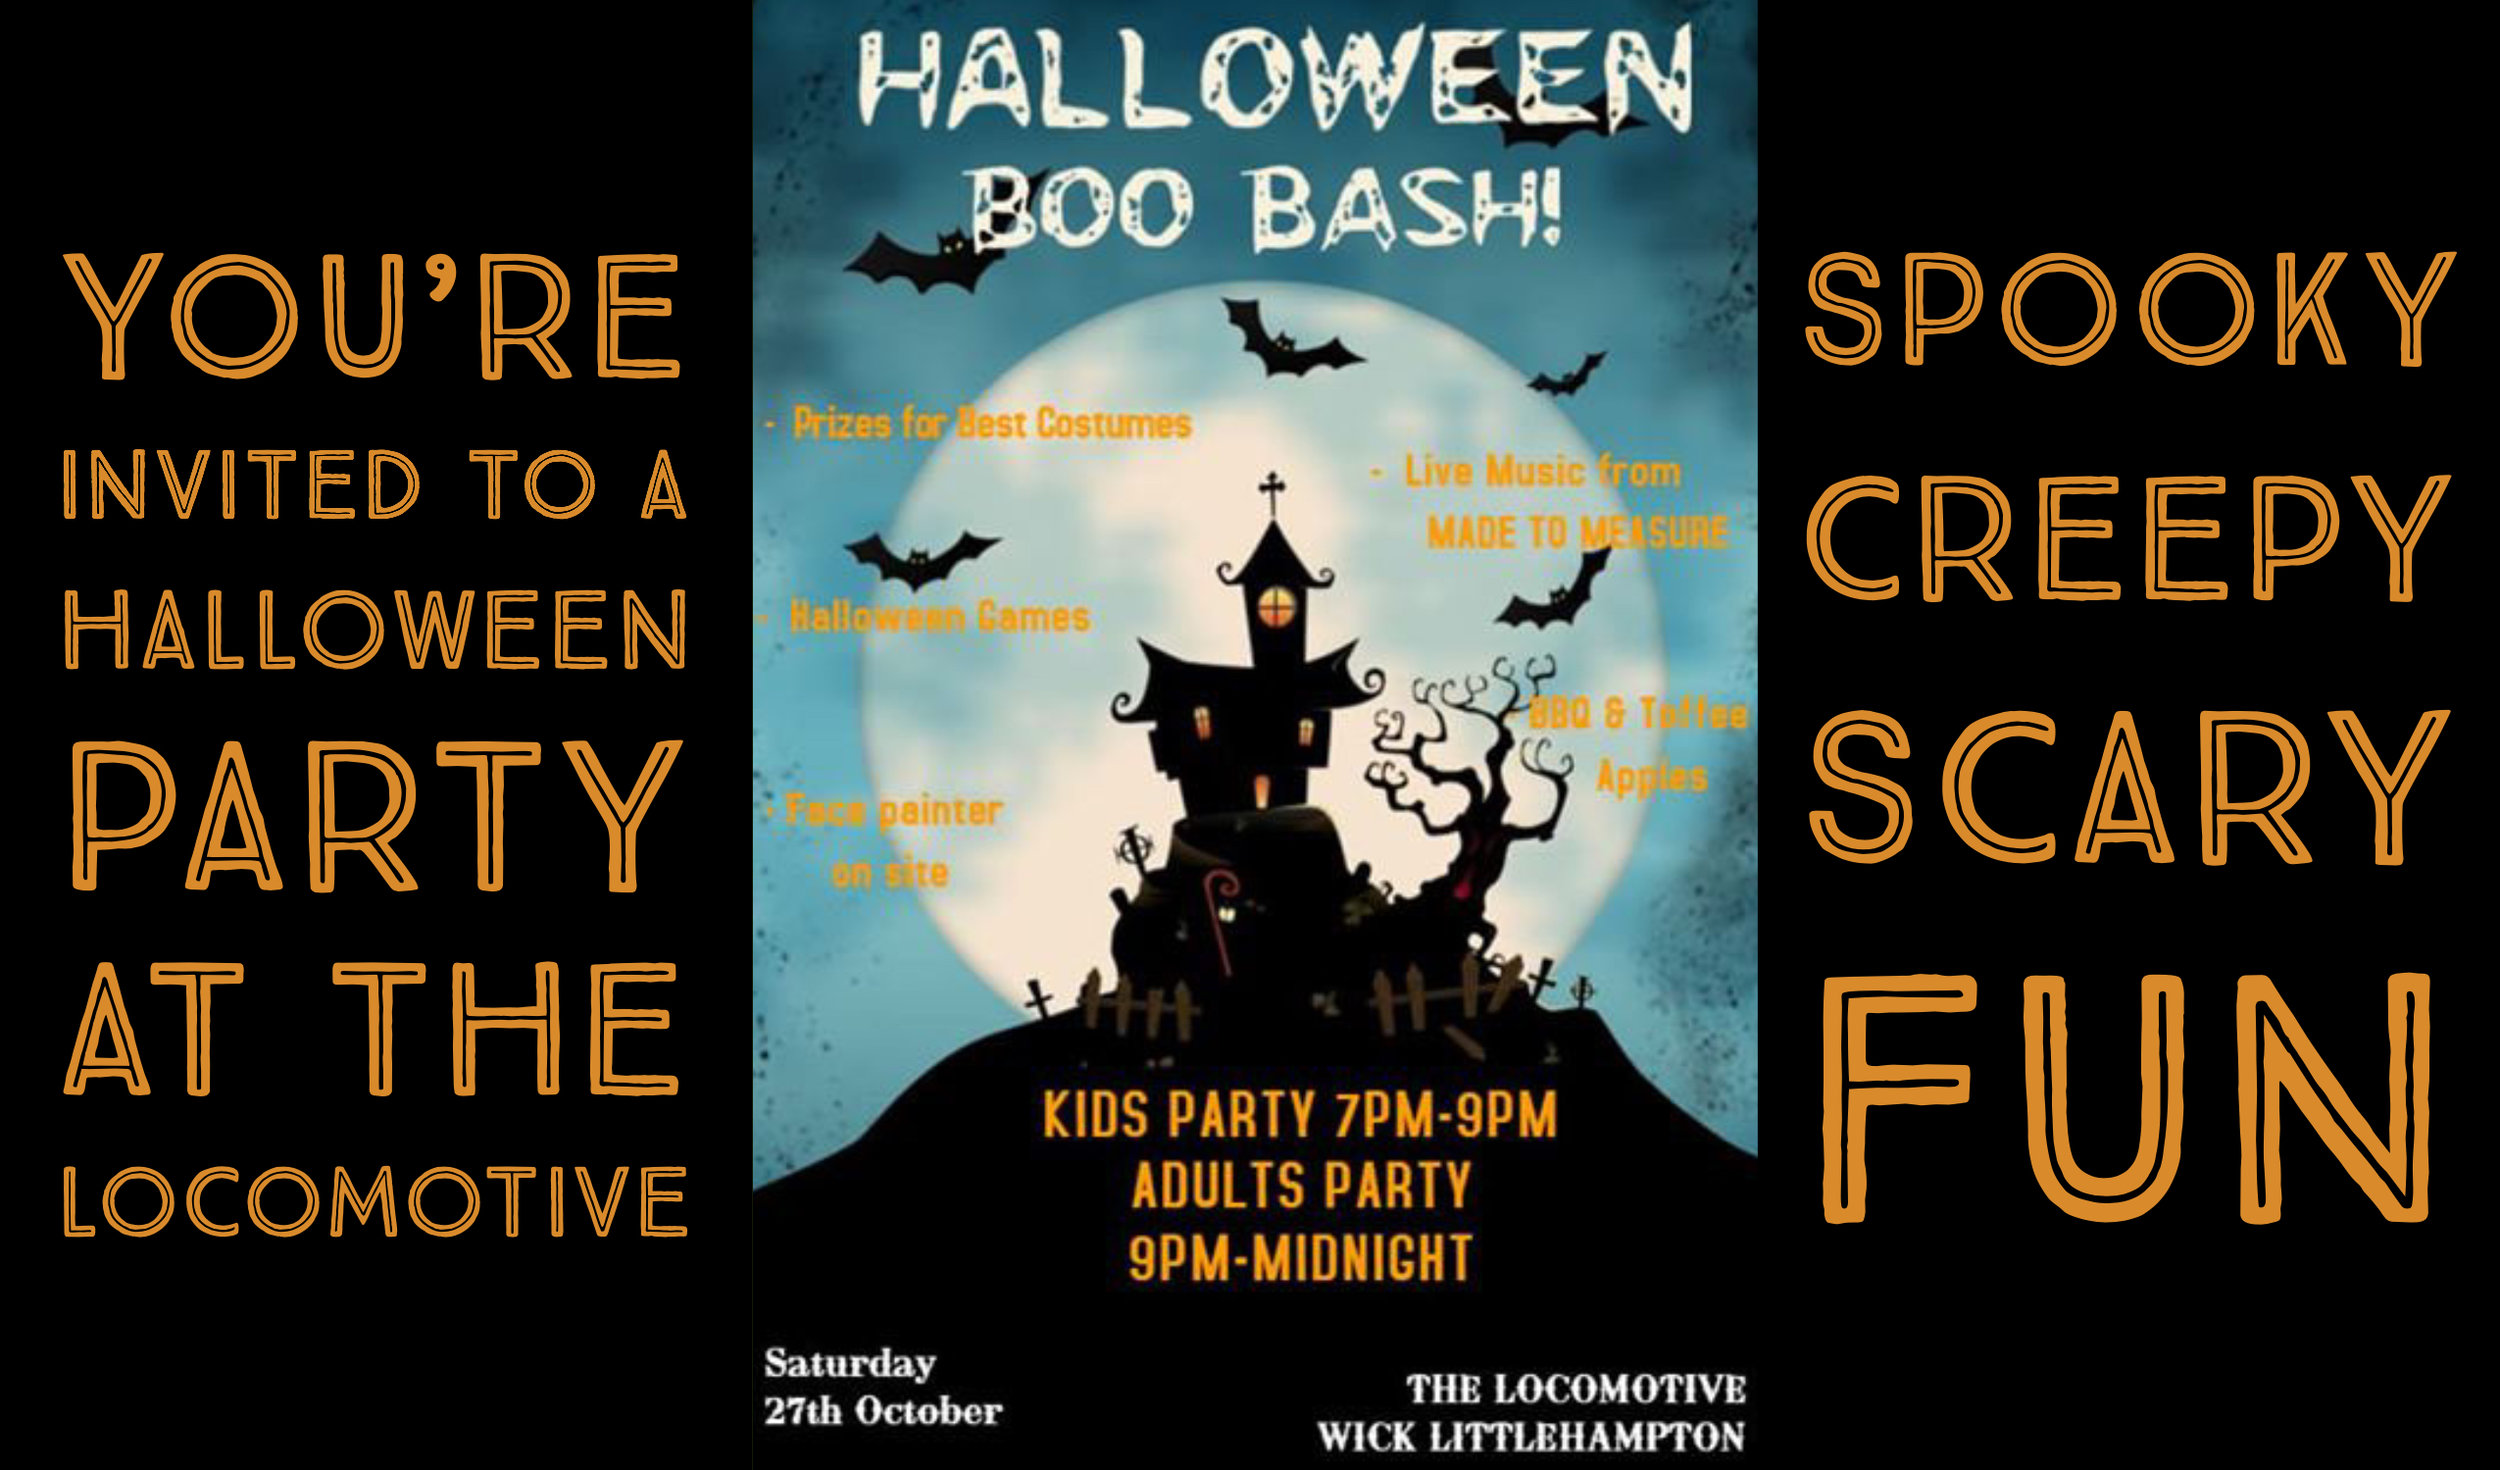 Join in the spooky Halloween fun at The Locomotive Pub in Wick Village, Littlehampton this October.